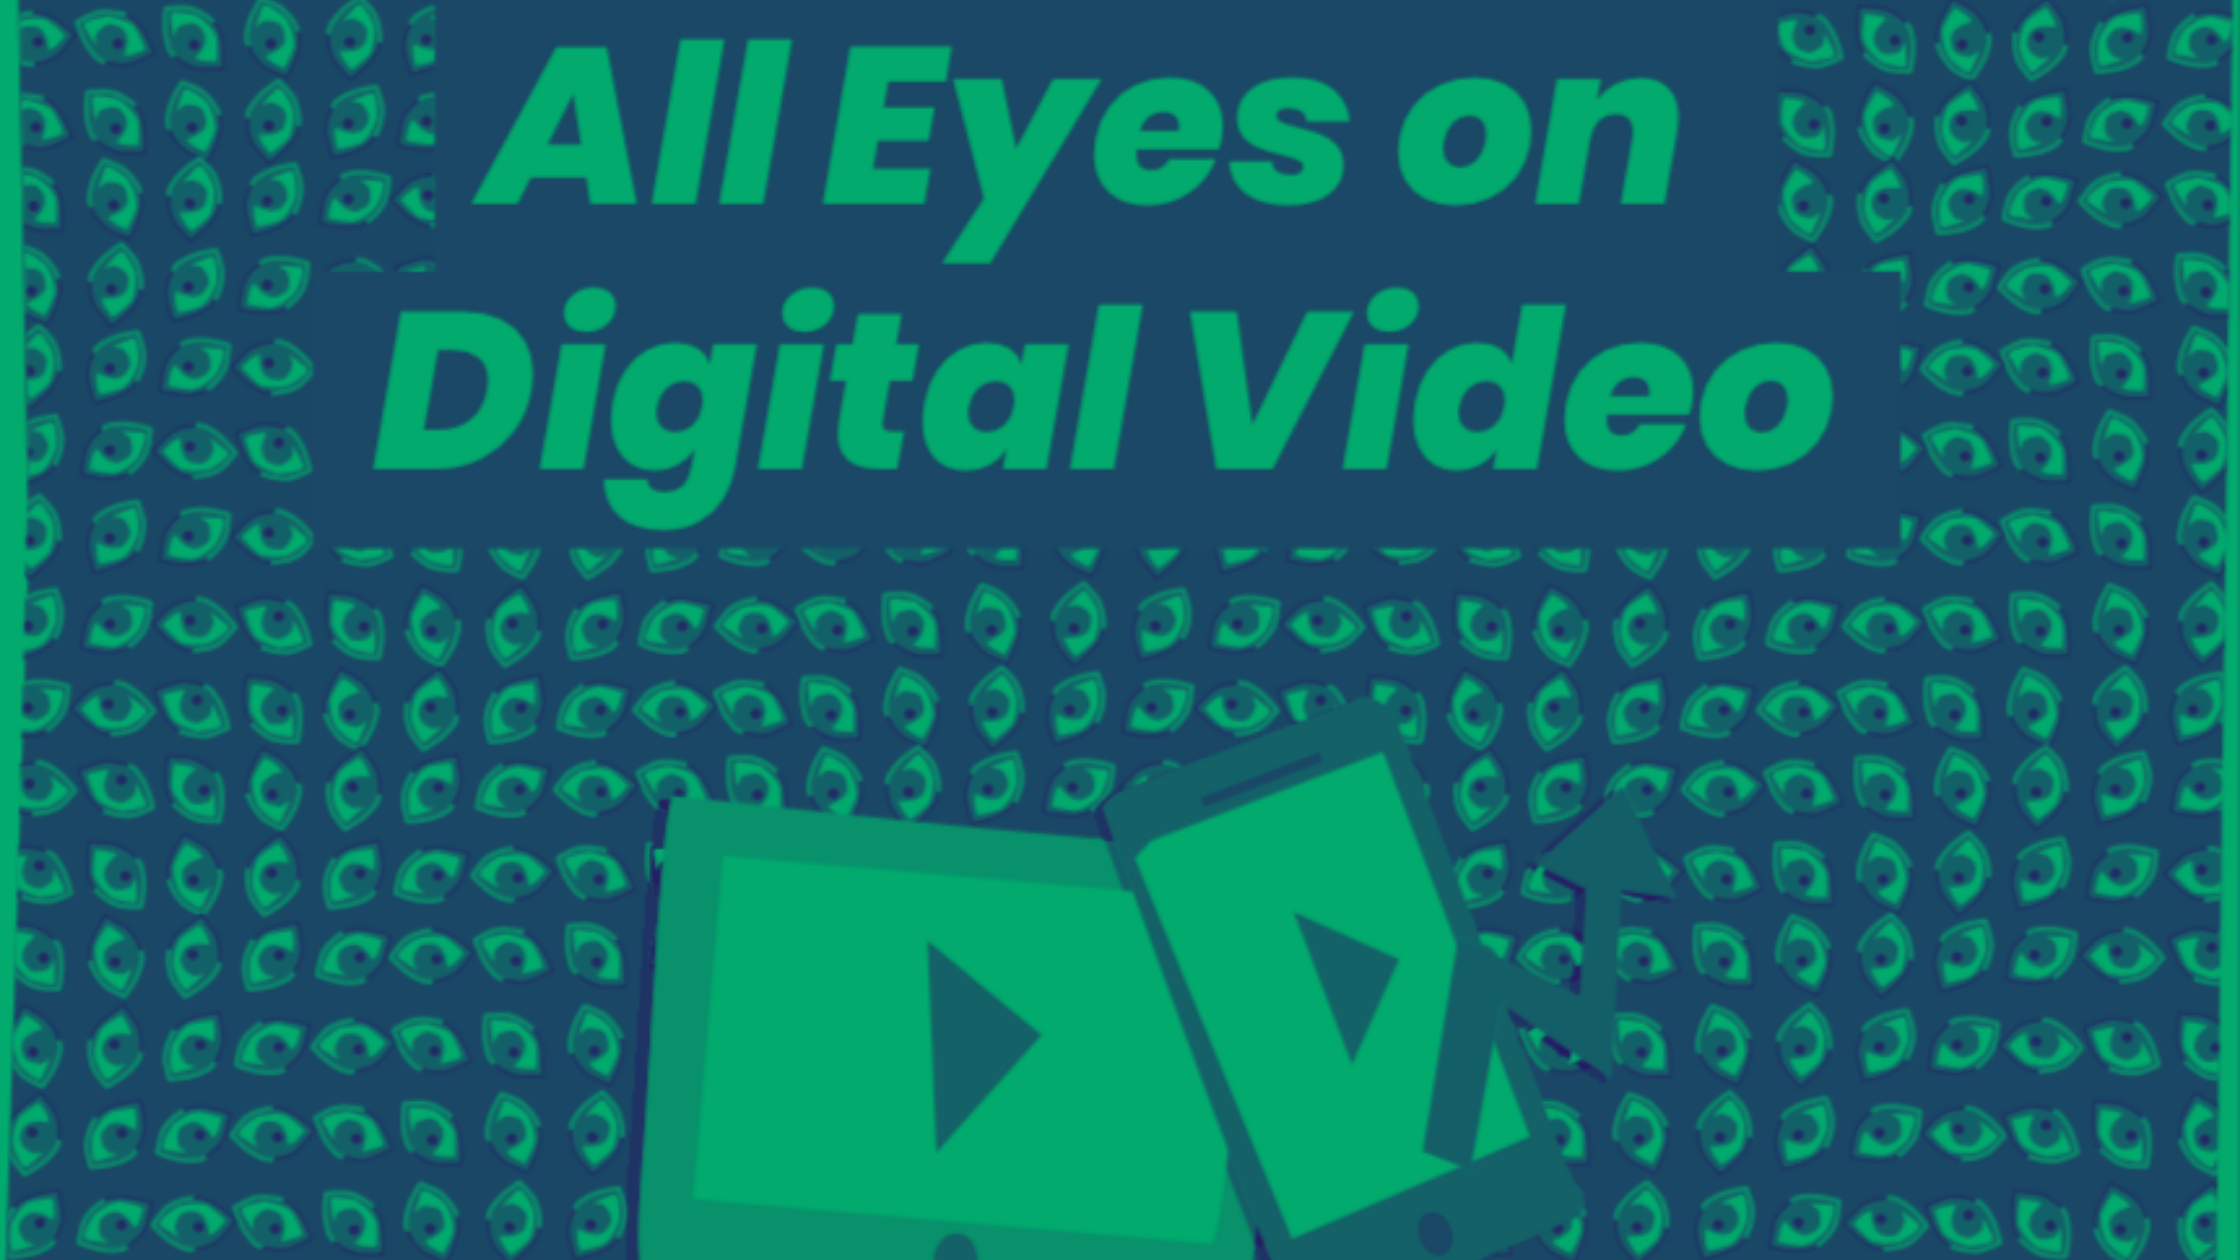 Digital Video Advertising Trends: Top Players in 2020